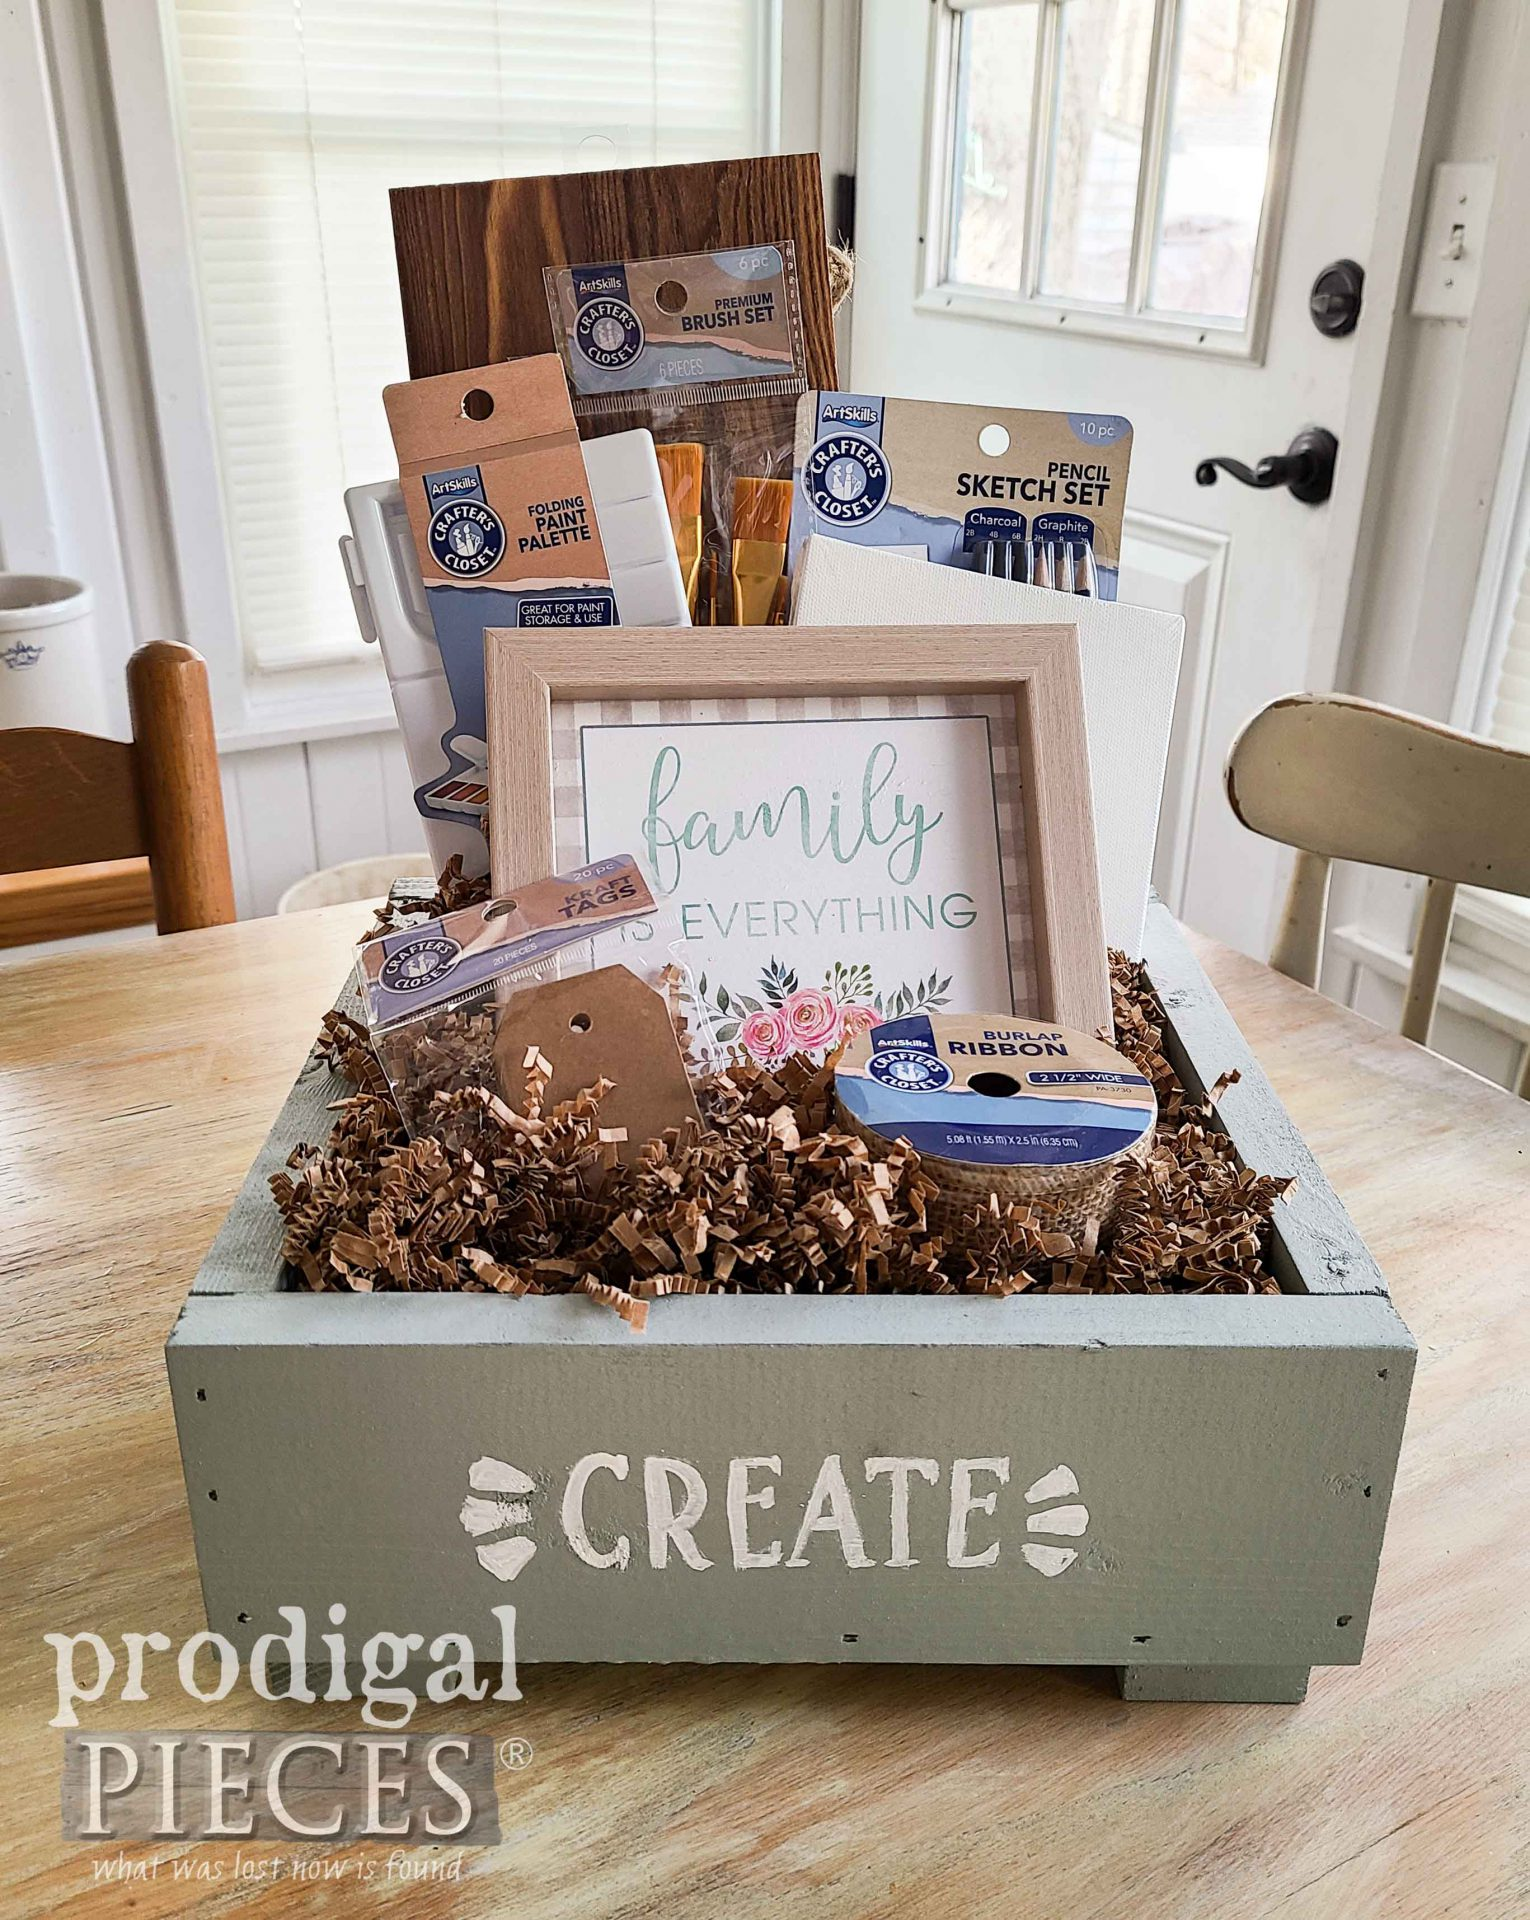 Let's Create! DIY Family Gift Box with tutorial by Larissa of Prodigal Pieces | prodigalpieces.com #prodigalpieces #tutorial #diy #handmade #gift #christmas